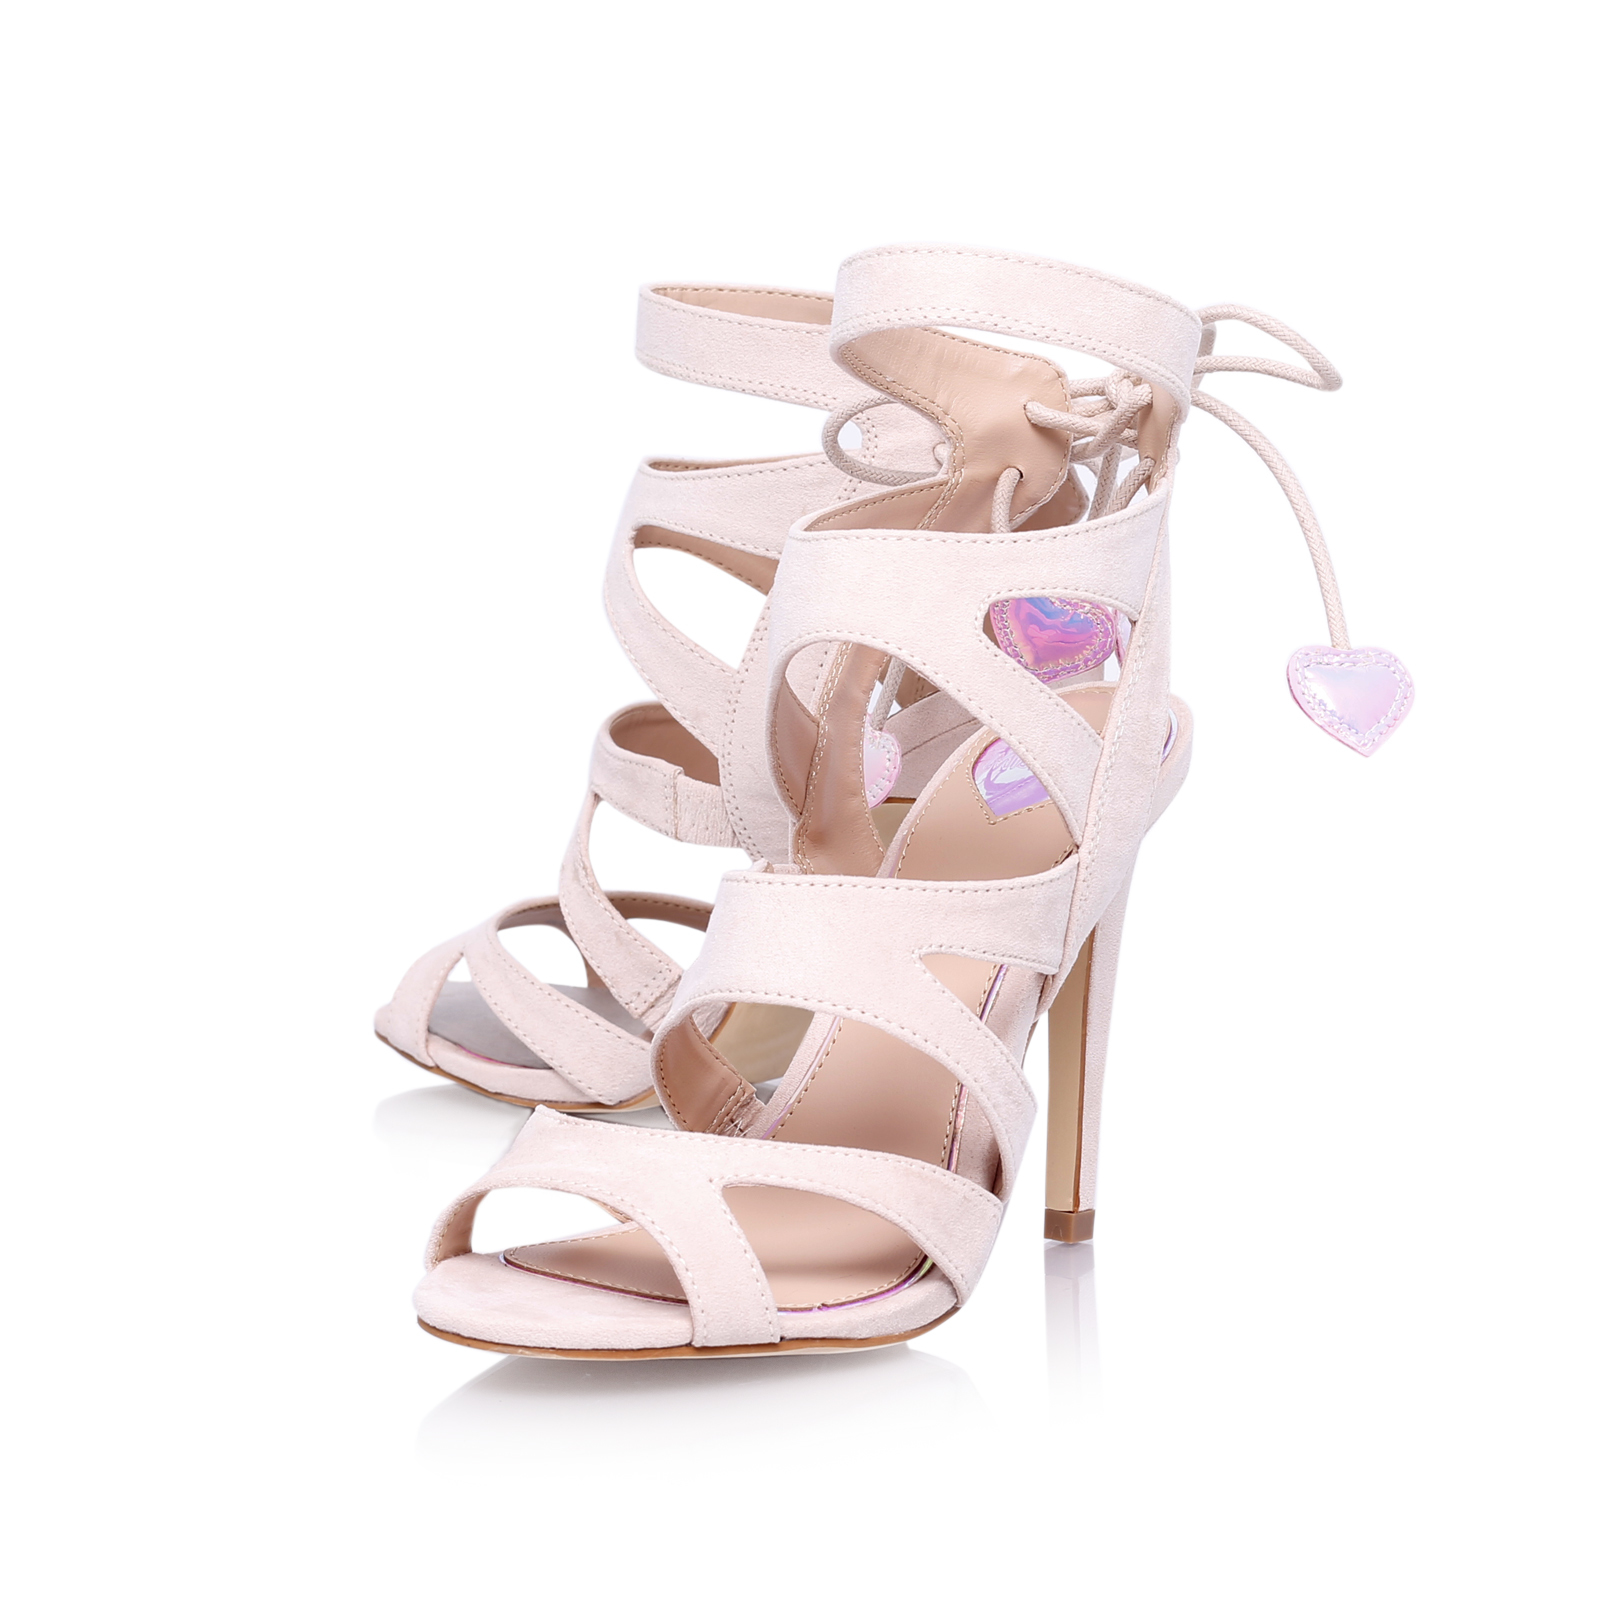 FRENCHY Miss KG Frenchy Nude High Heel Sandals by MISS KG